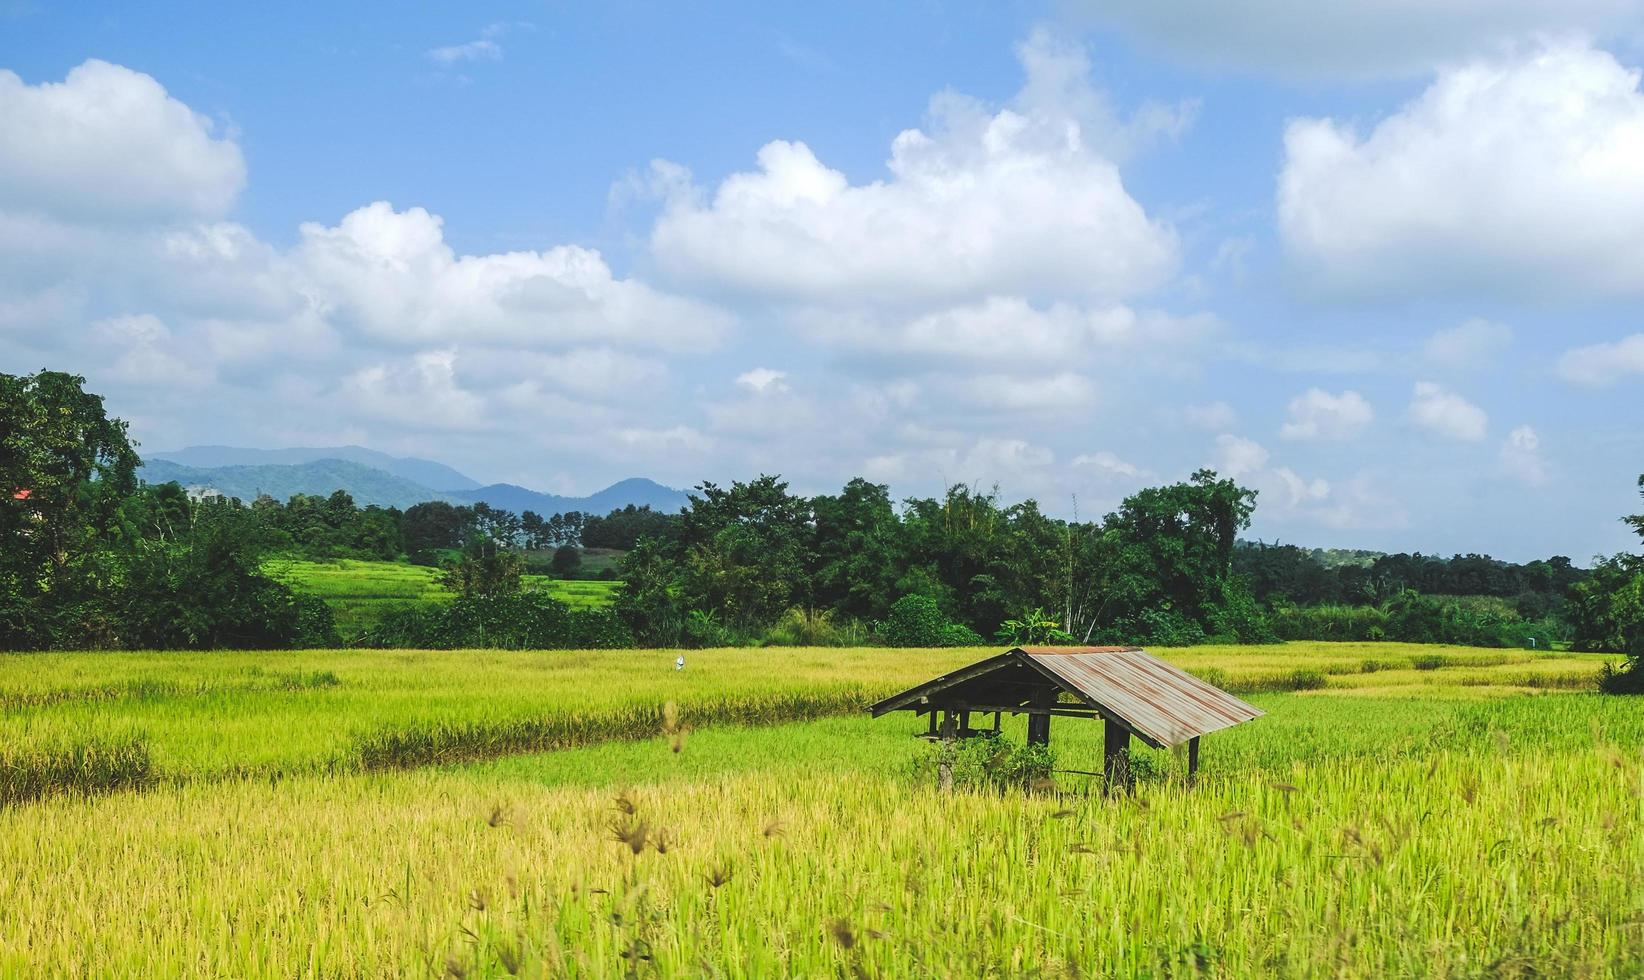 An old hut in the yellow- green rice field. photo